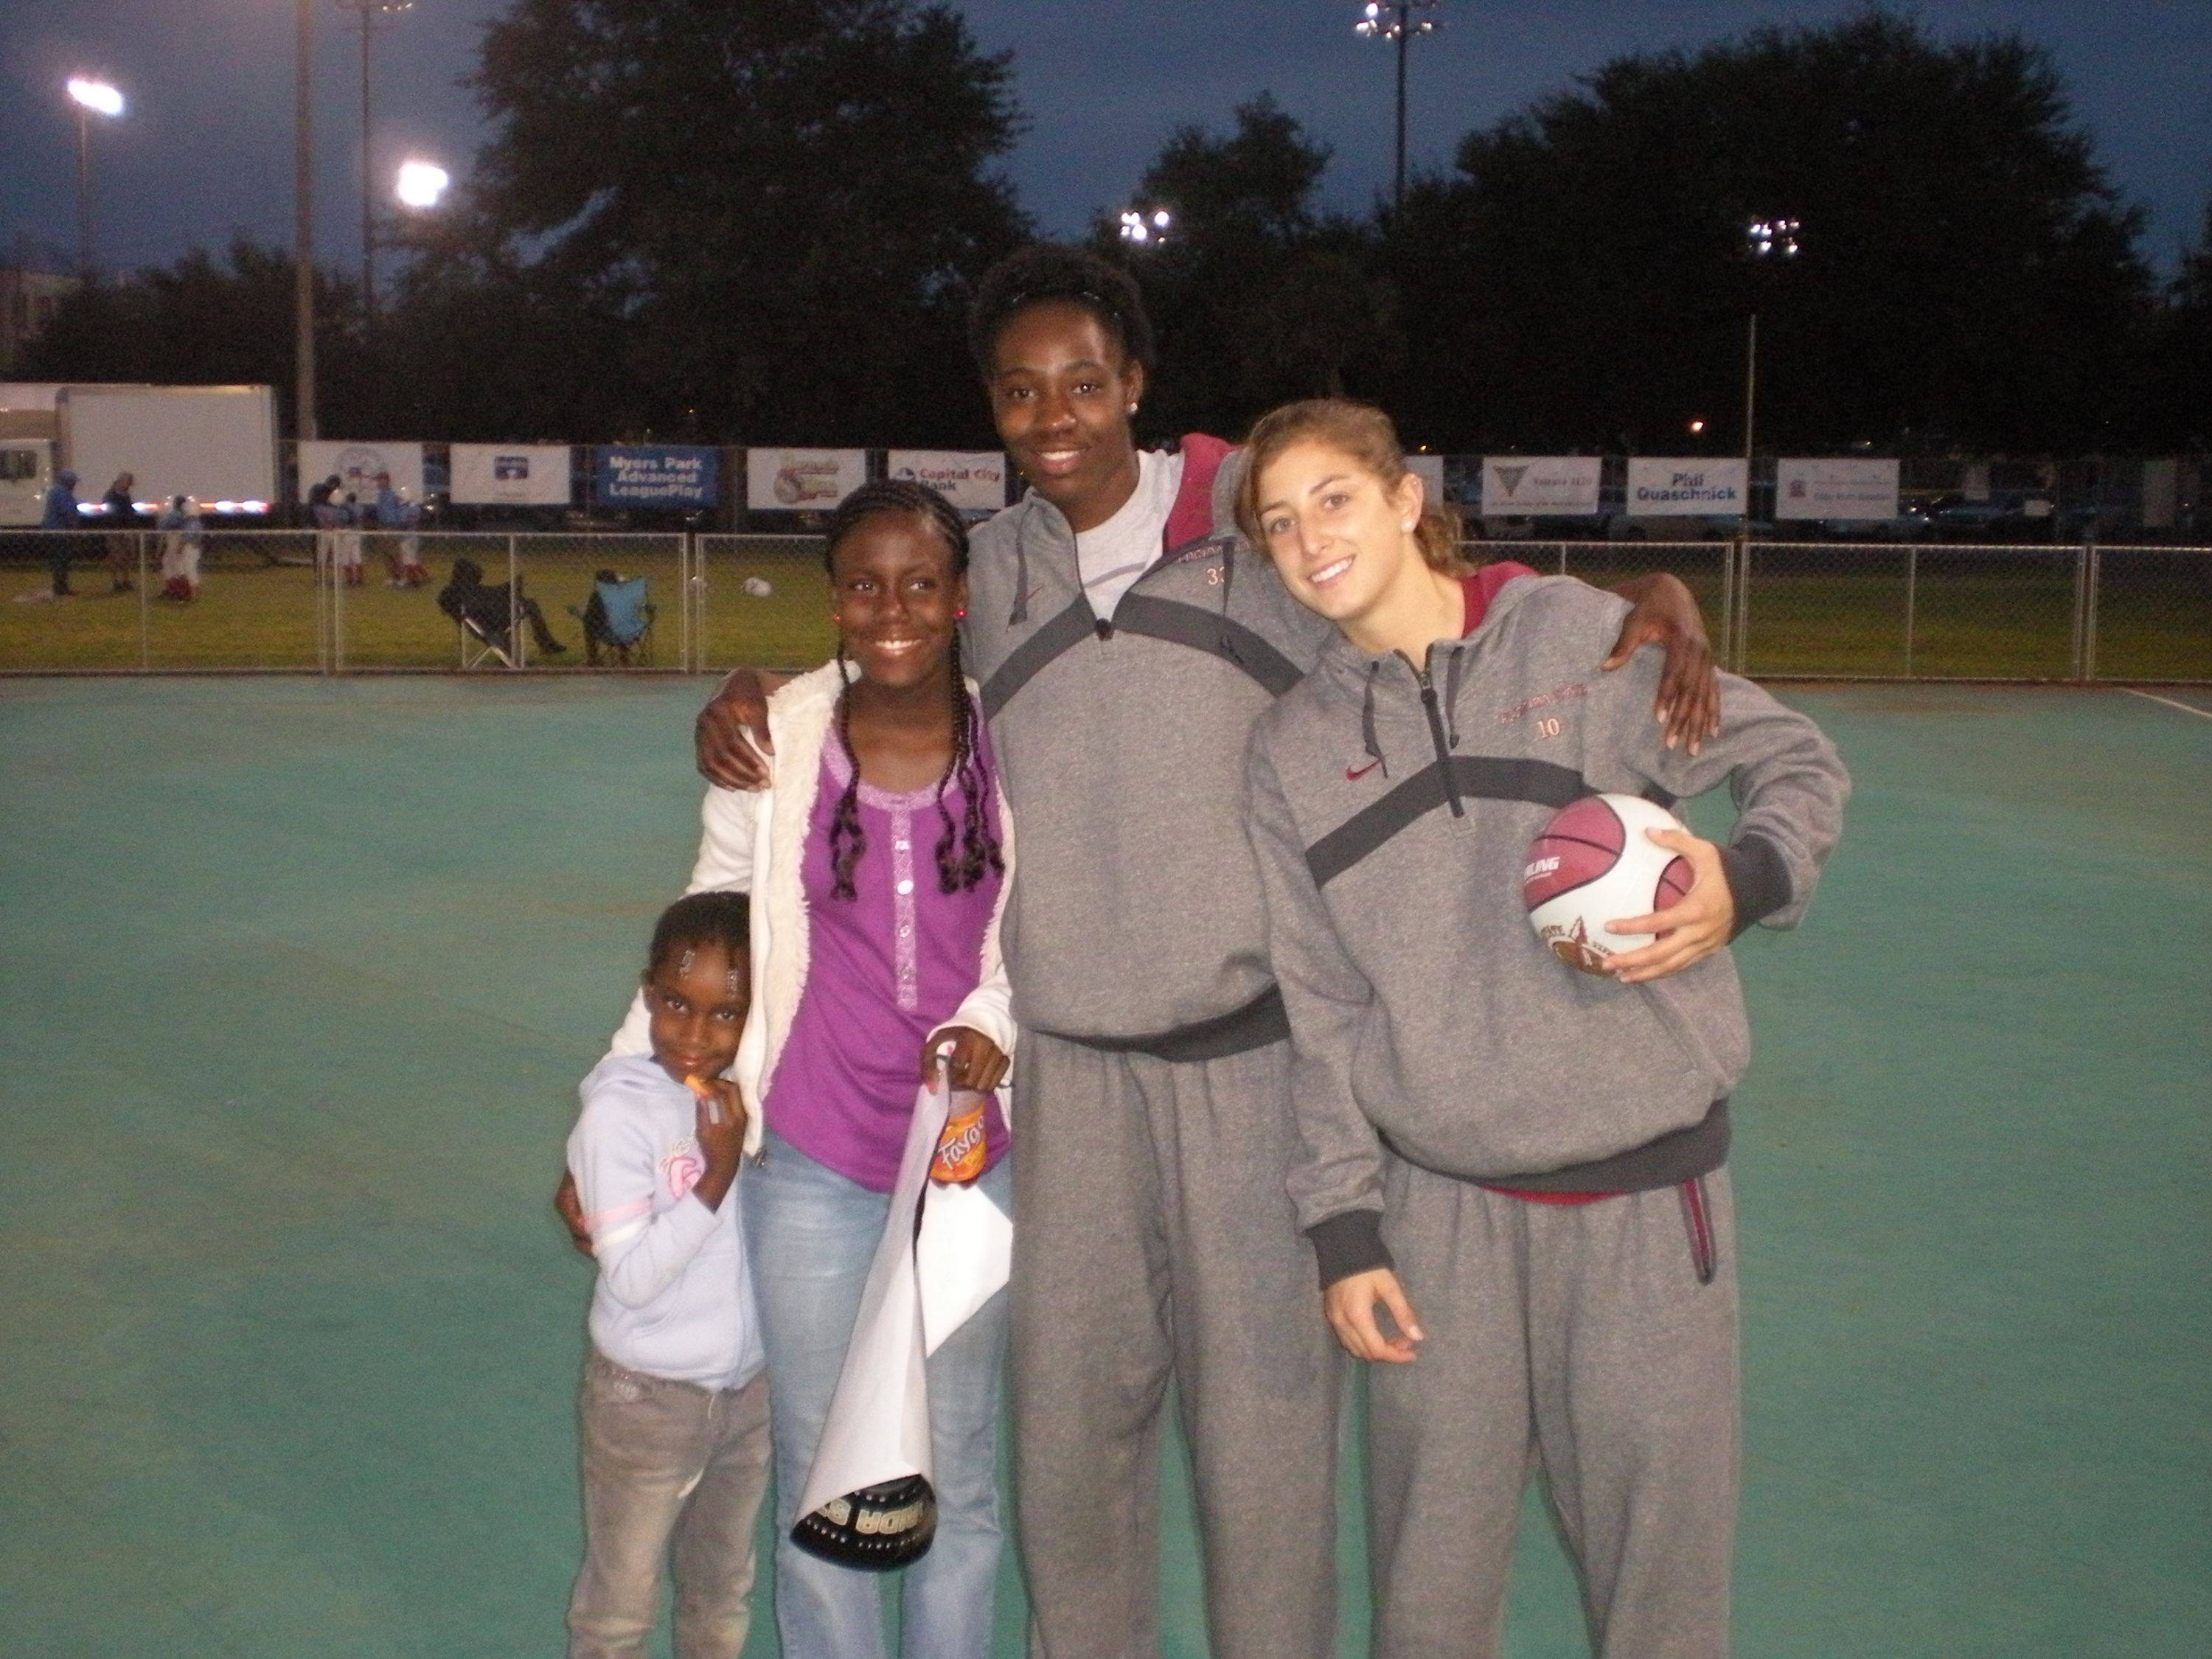 Natasha Howard and Leonor Rodriguez pose for a photo with some local Tallahassee youngsters.